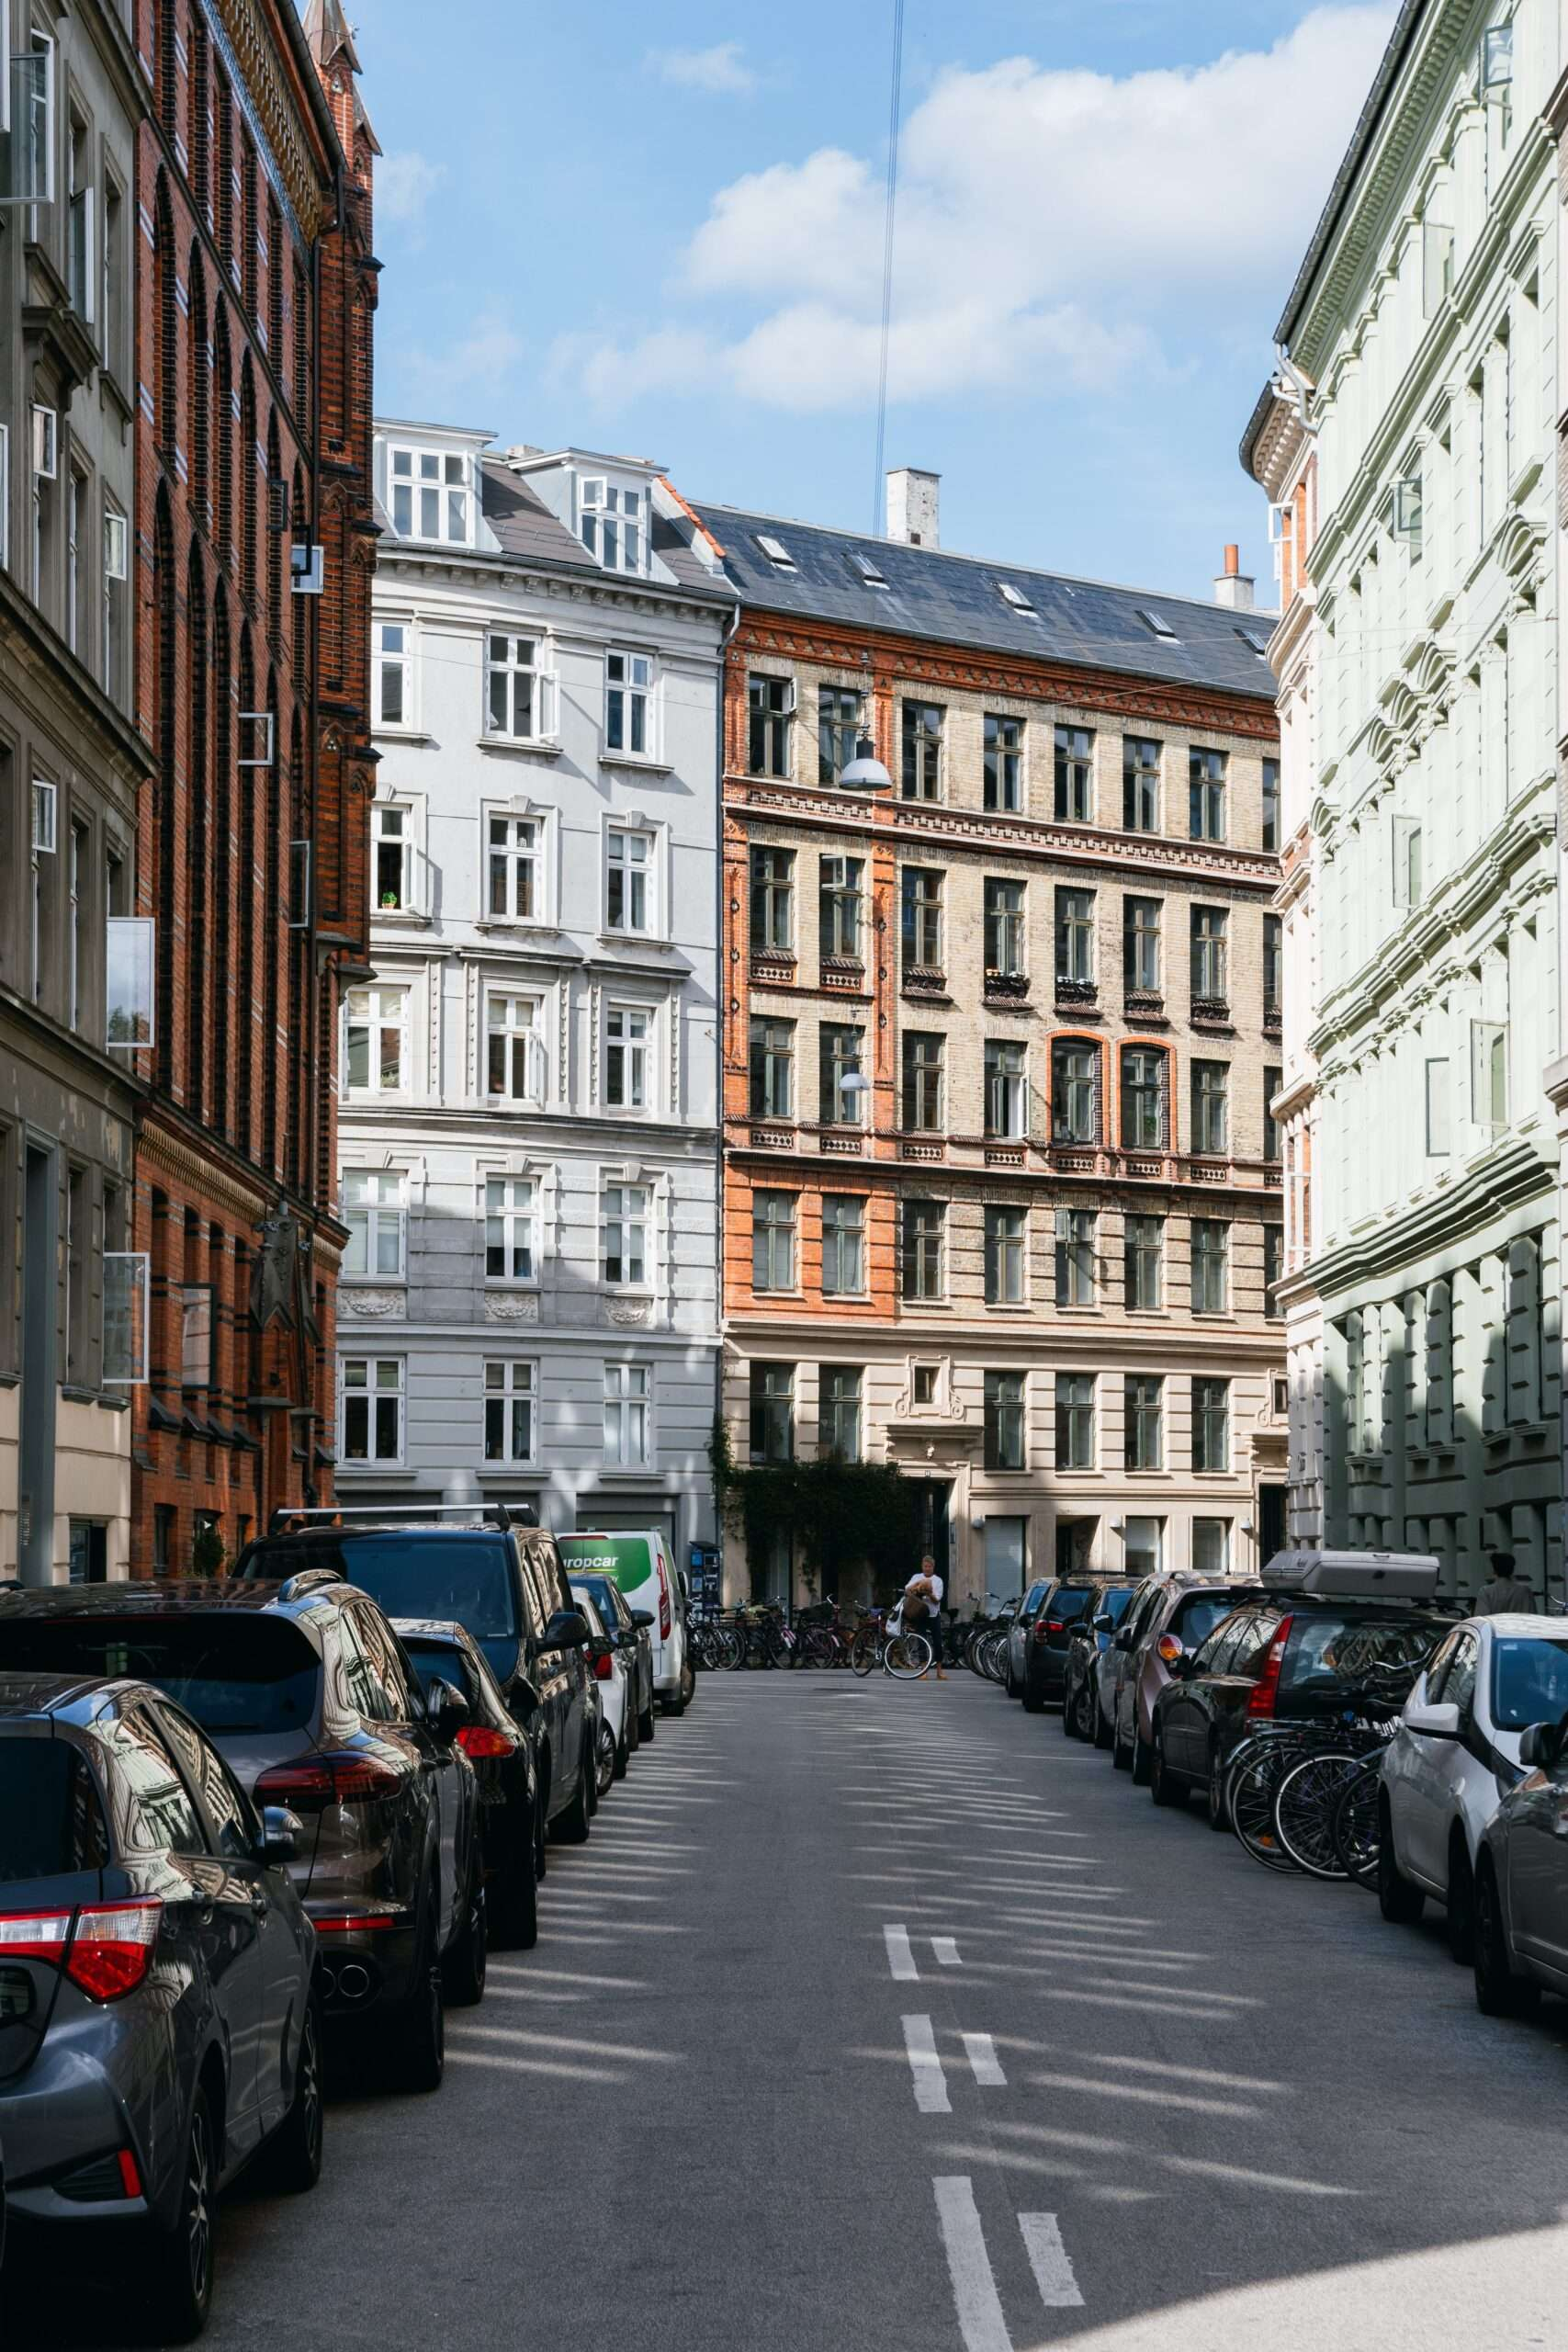 a street in Copenhagen with 6 storey buildings in brown brick andwhite paint